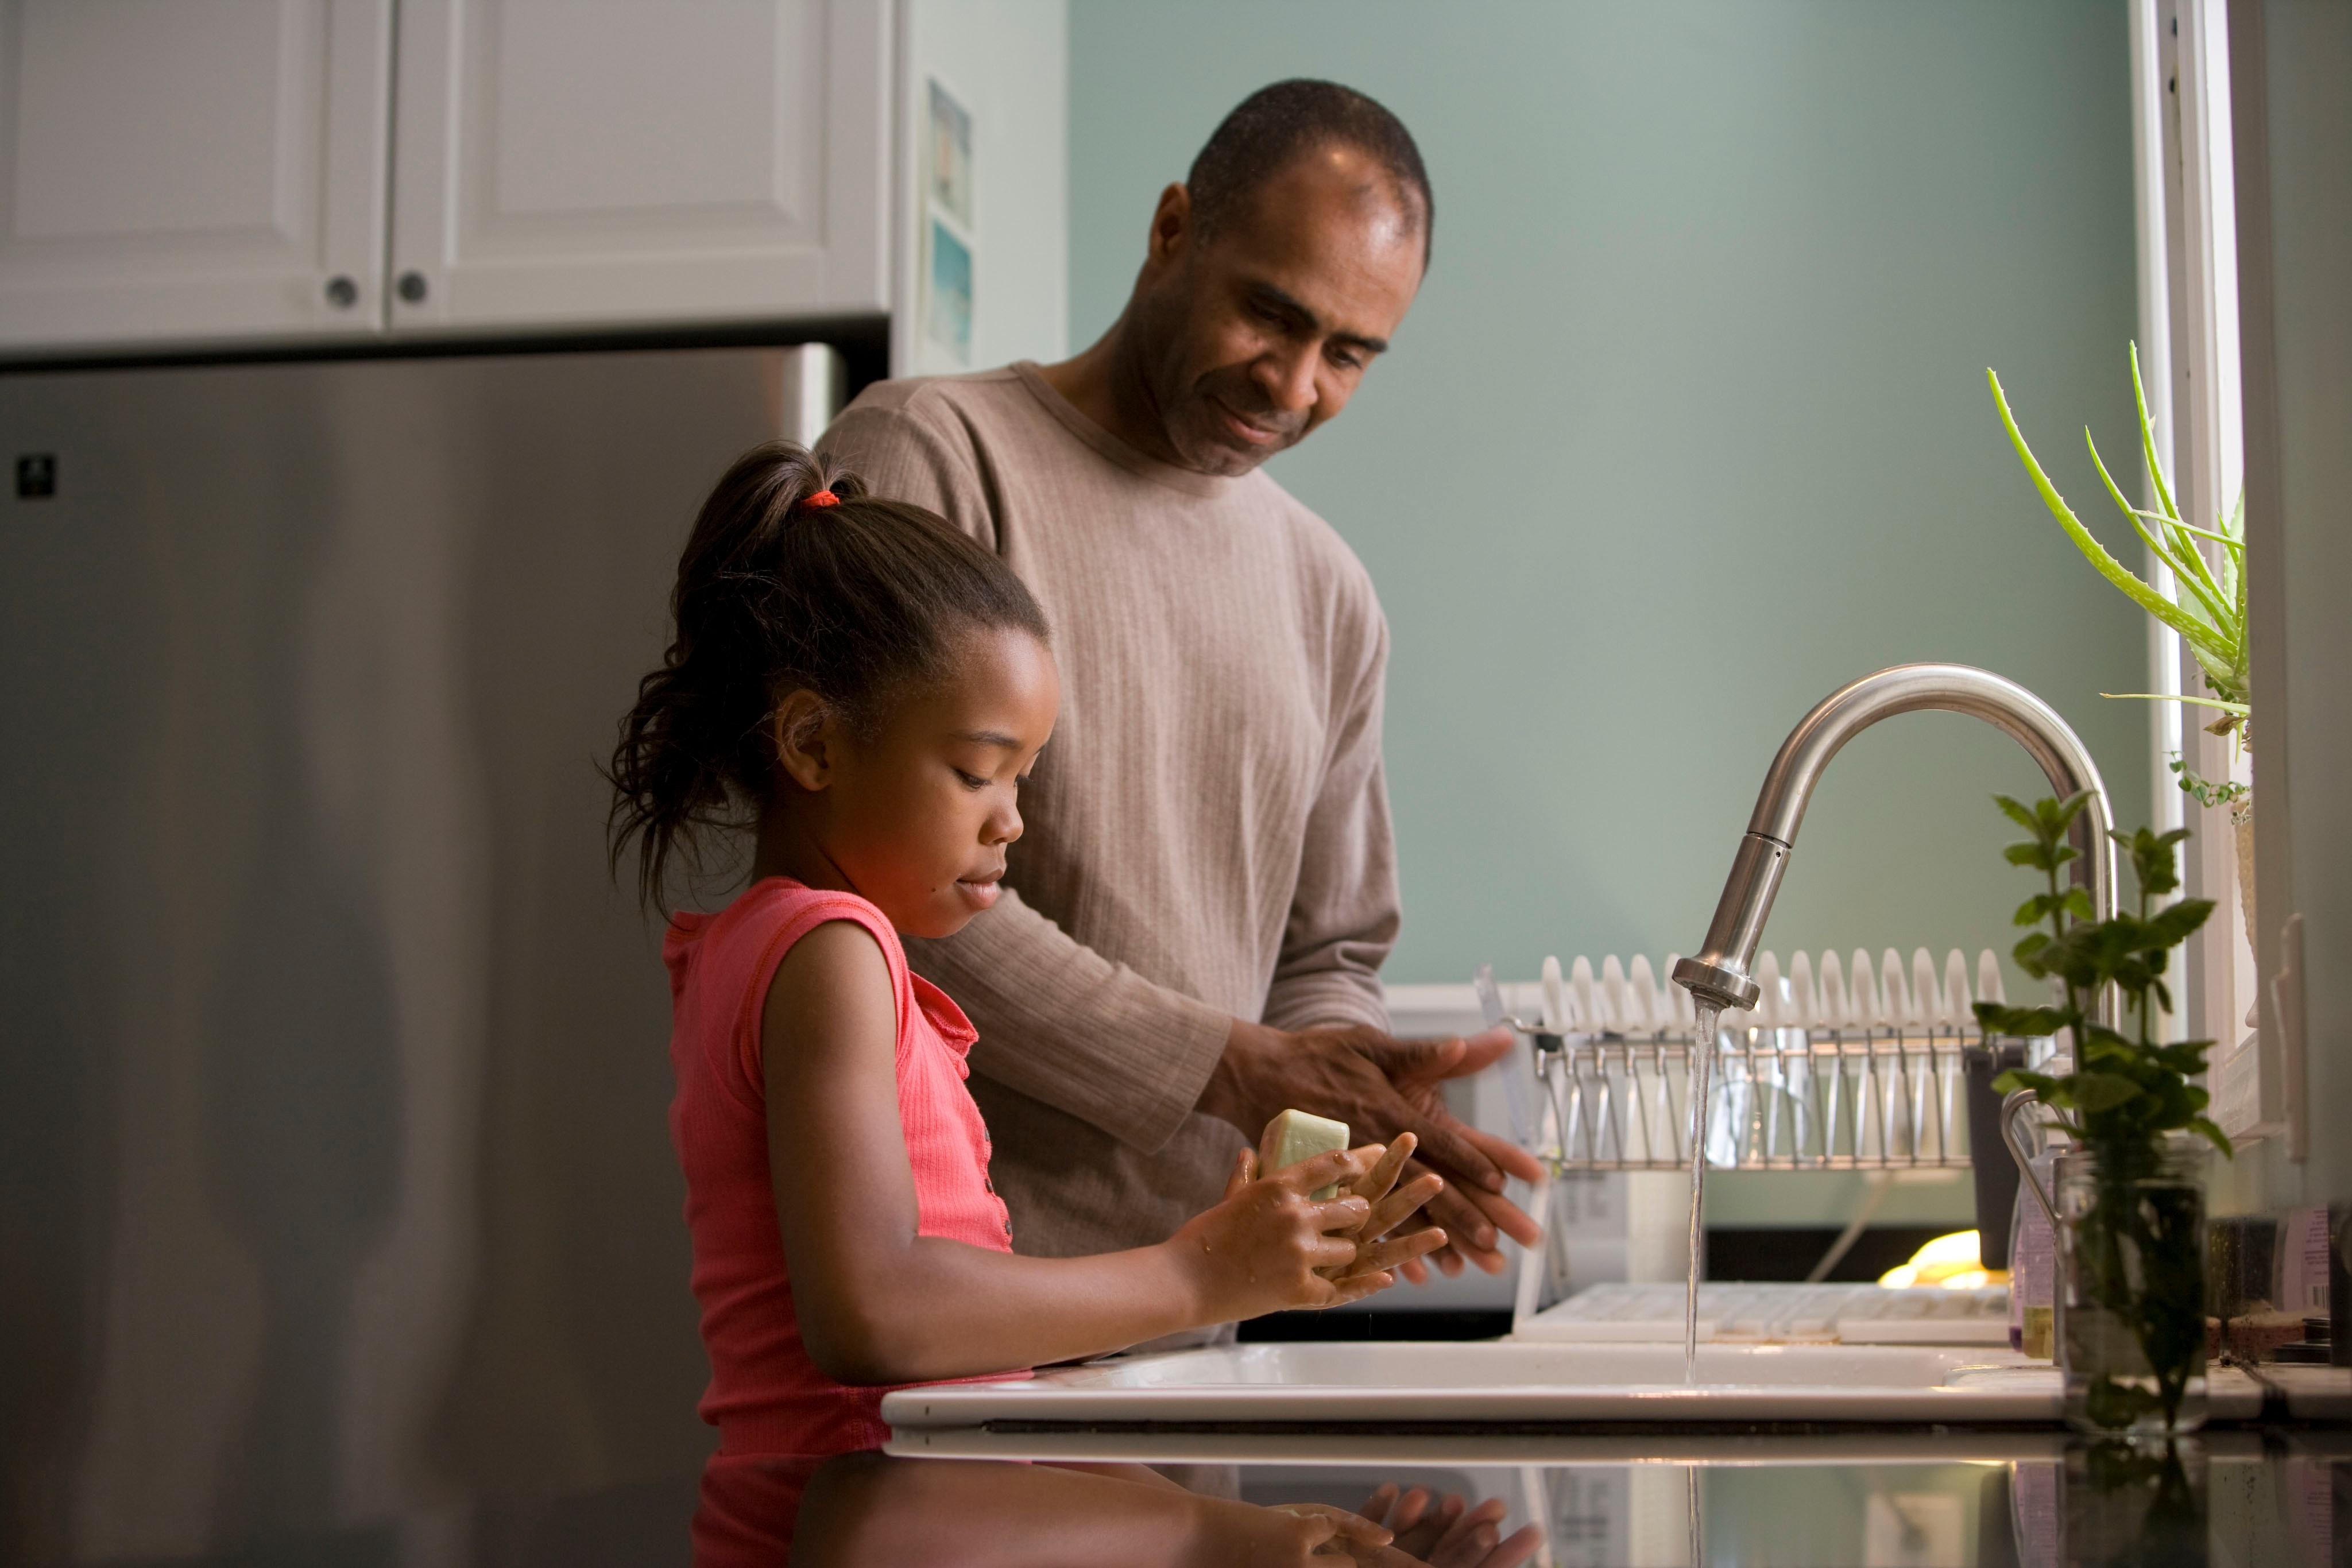 A man washes hands with his daughter. Value-based cultures allow people to spend time with their families.